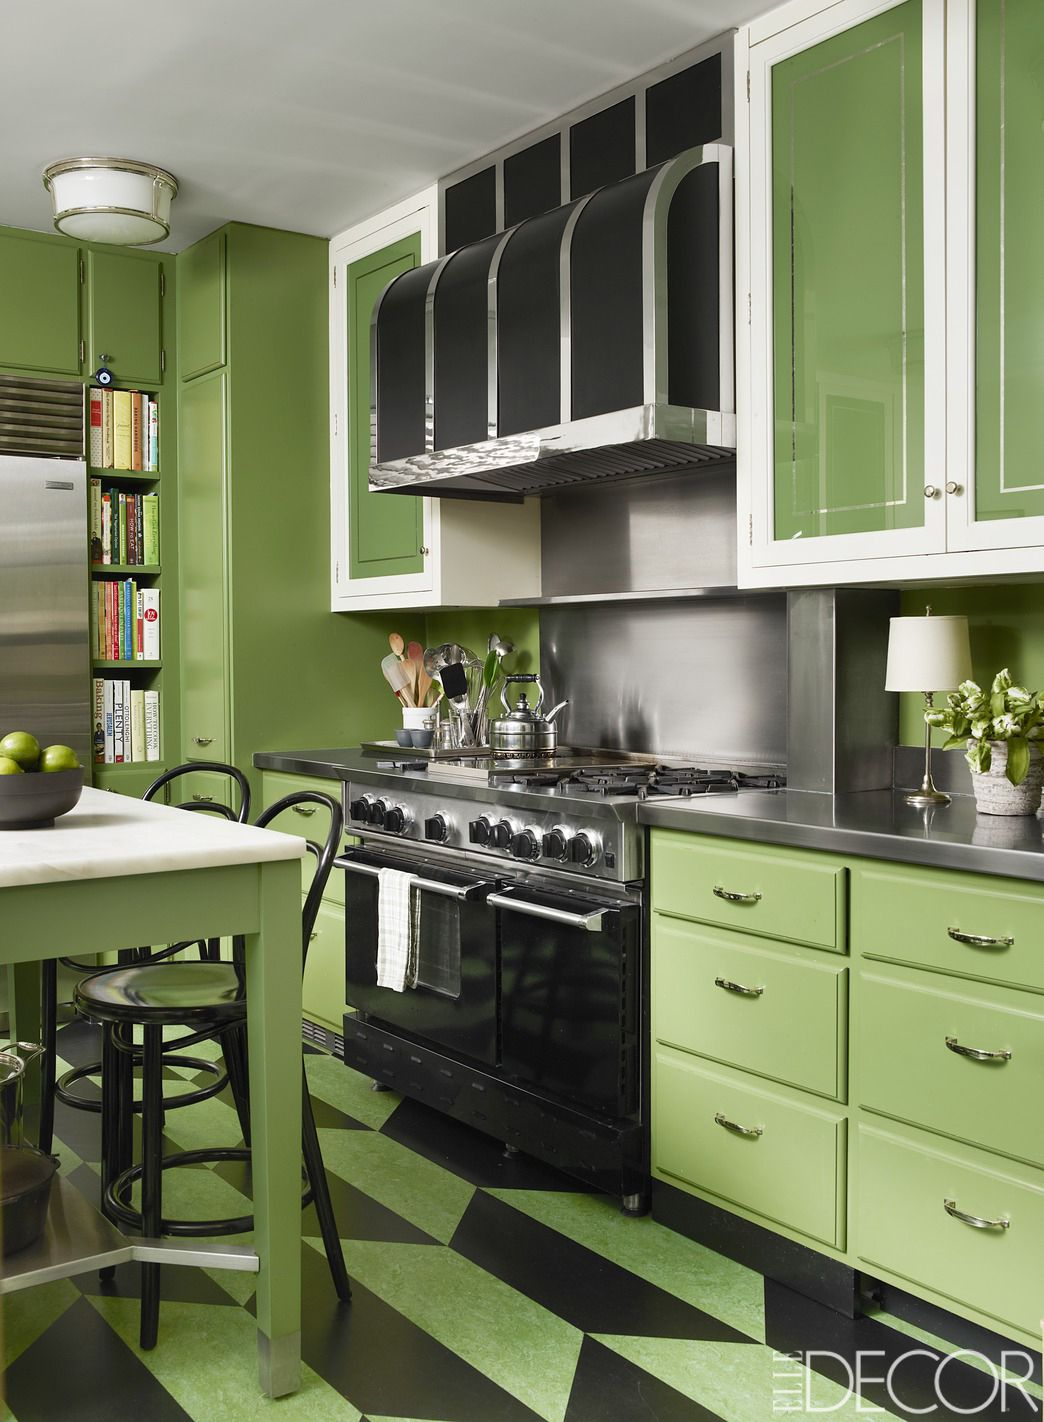 Furniture For The Kitchen 40 Small Kitchen Design Ideas Decorating Tiny Kitchens